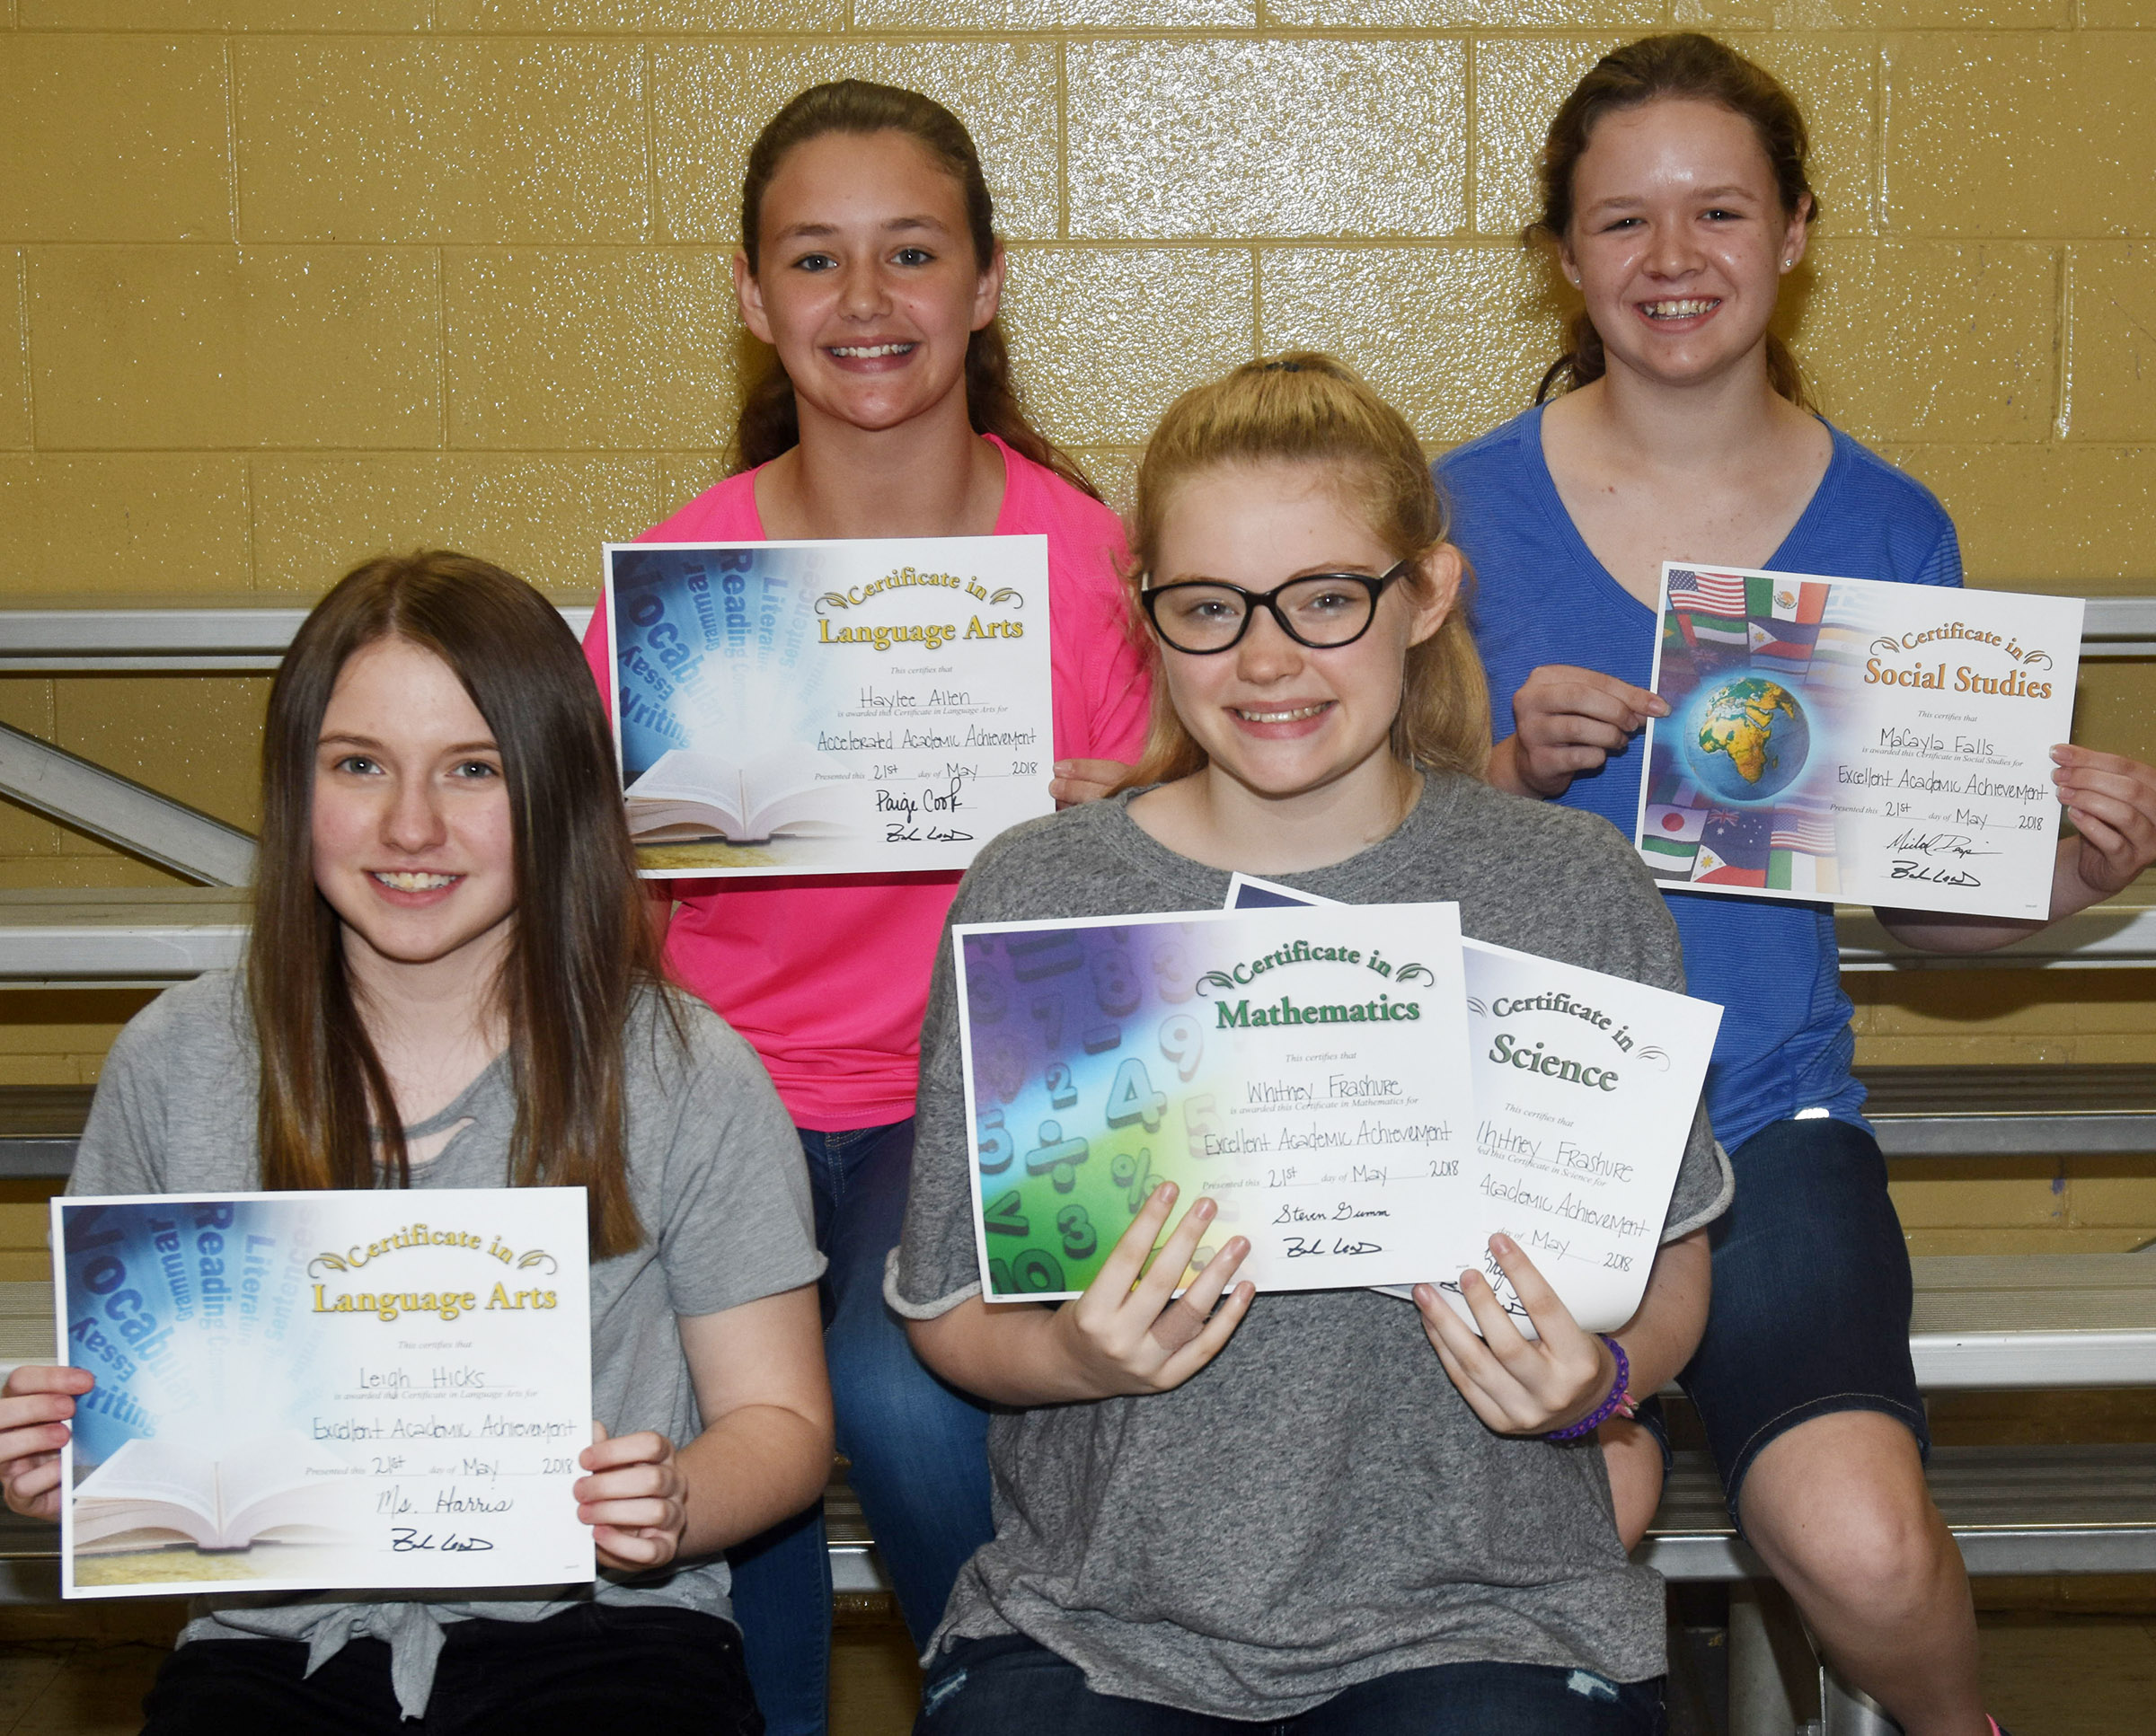 Seventh-grade subject award winners are, from left, front, Leigh Hicks, language arts; and Whitney Frashure, science and math. Back, Haylee Allen, accelerated language arts; and MaCayla Falls, social studies.